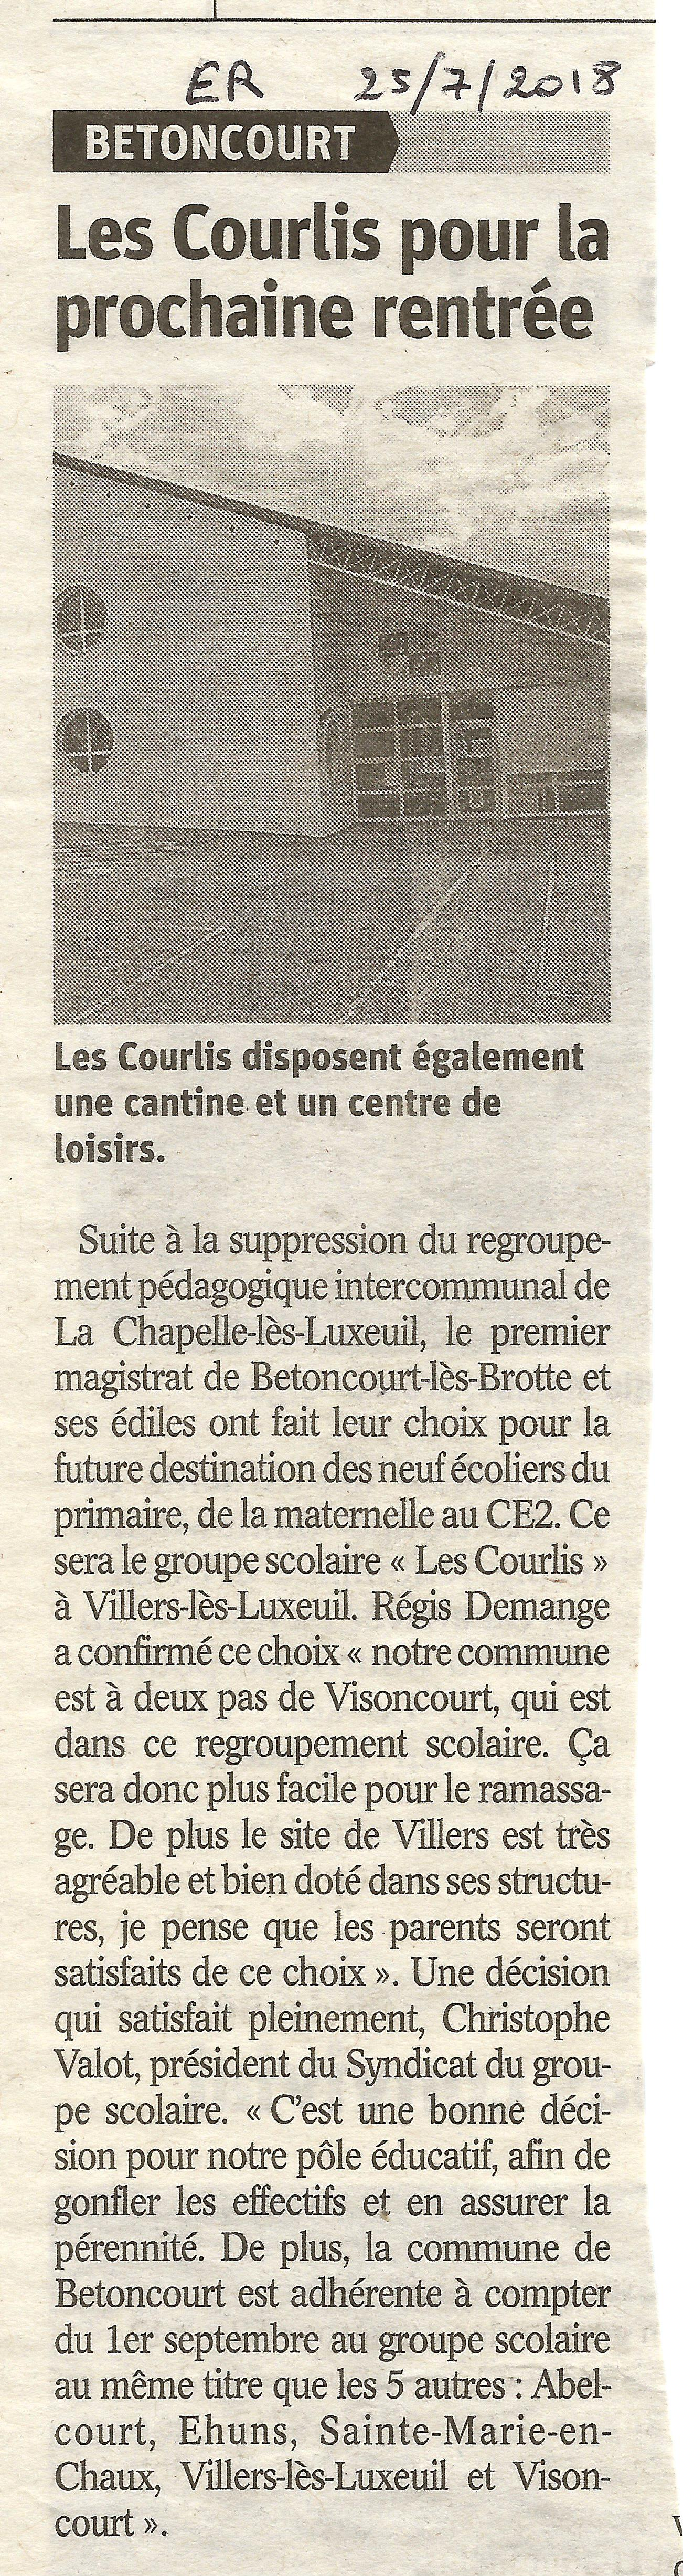 https://www.villers-les-luxeuil.com/projets/villers/files/images/2018_Mairie/Presse/2018_07_25.jpg